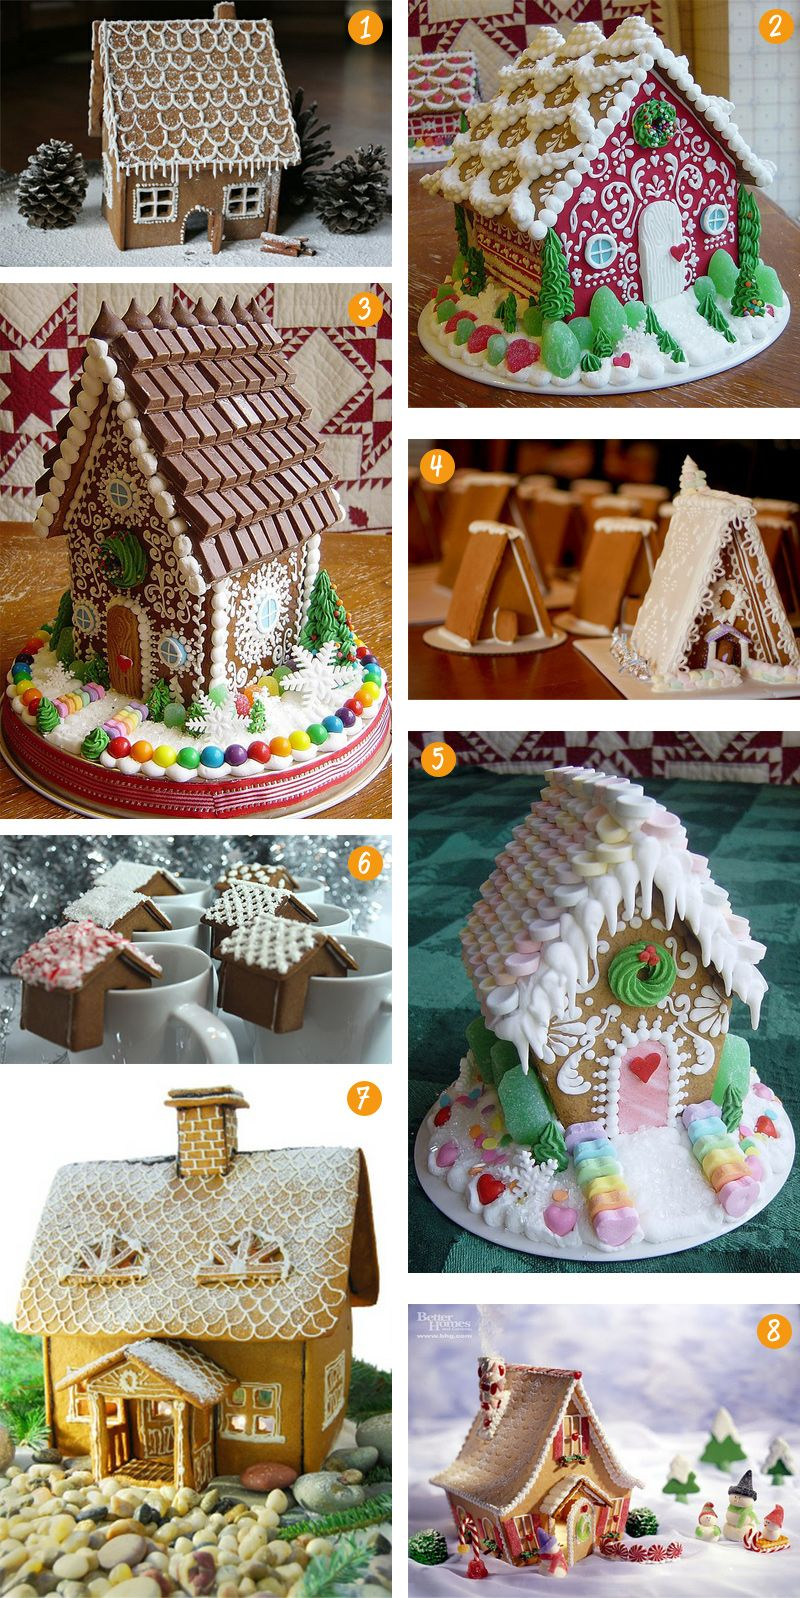 Wee Christmas finds: Gingerbread houses - Wee Bird